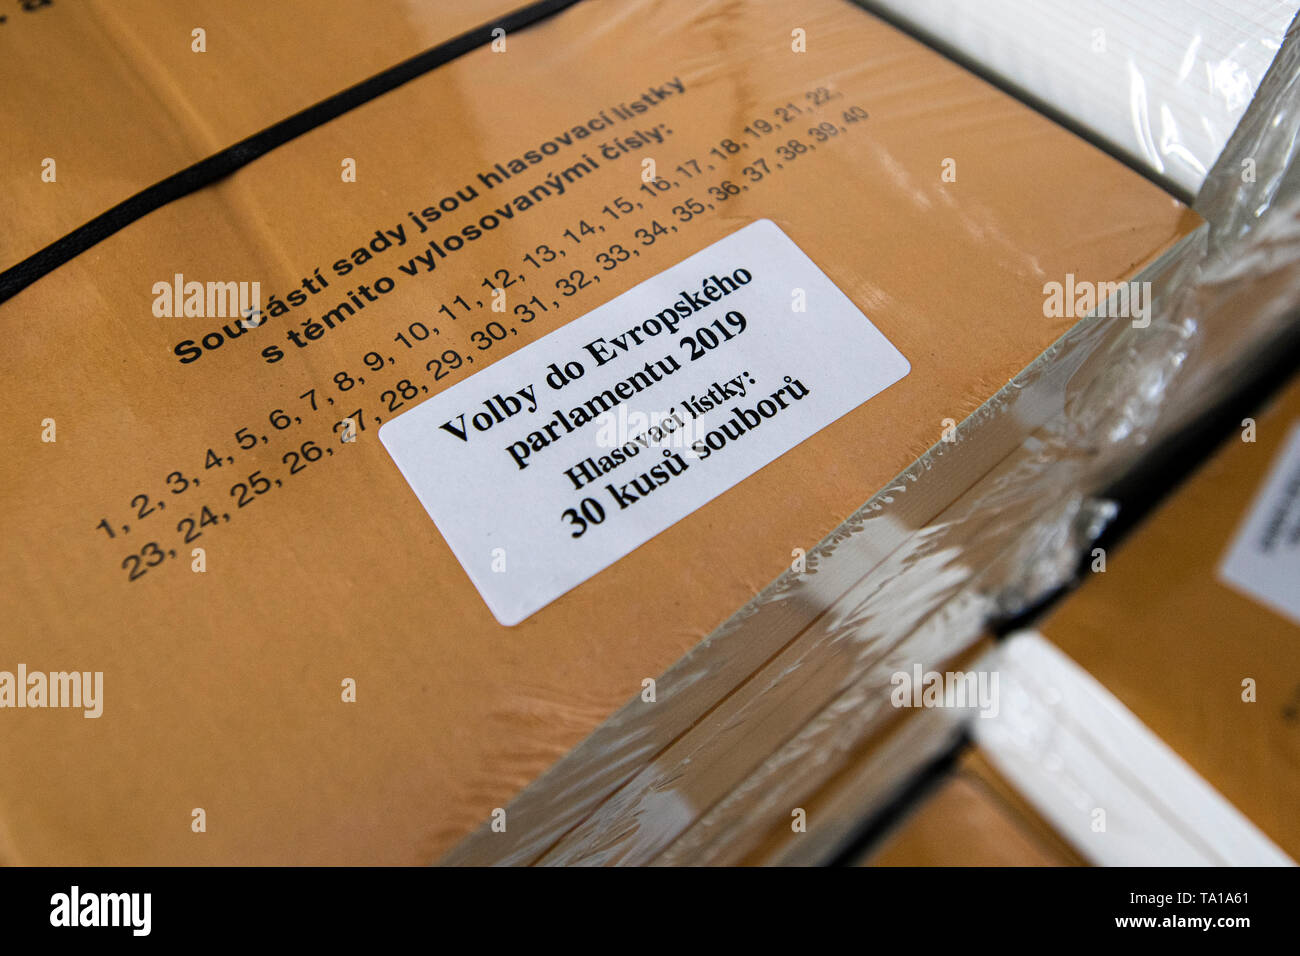 Ongoing preparations prior to the 2019 European Parliament election in the Czech Republic are seen on May 21, 2019, in Hradec Kralove, Czech Republic. (CTK Photo/David Tanecek) Stock Photo